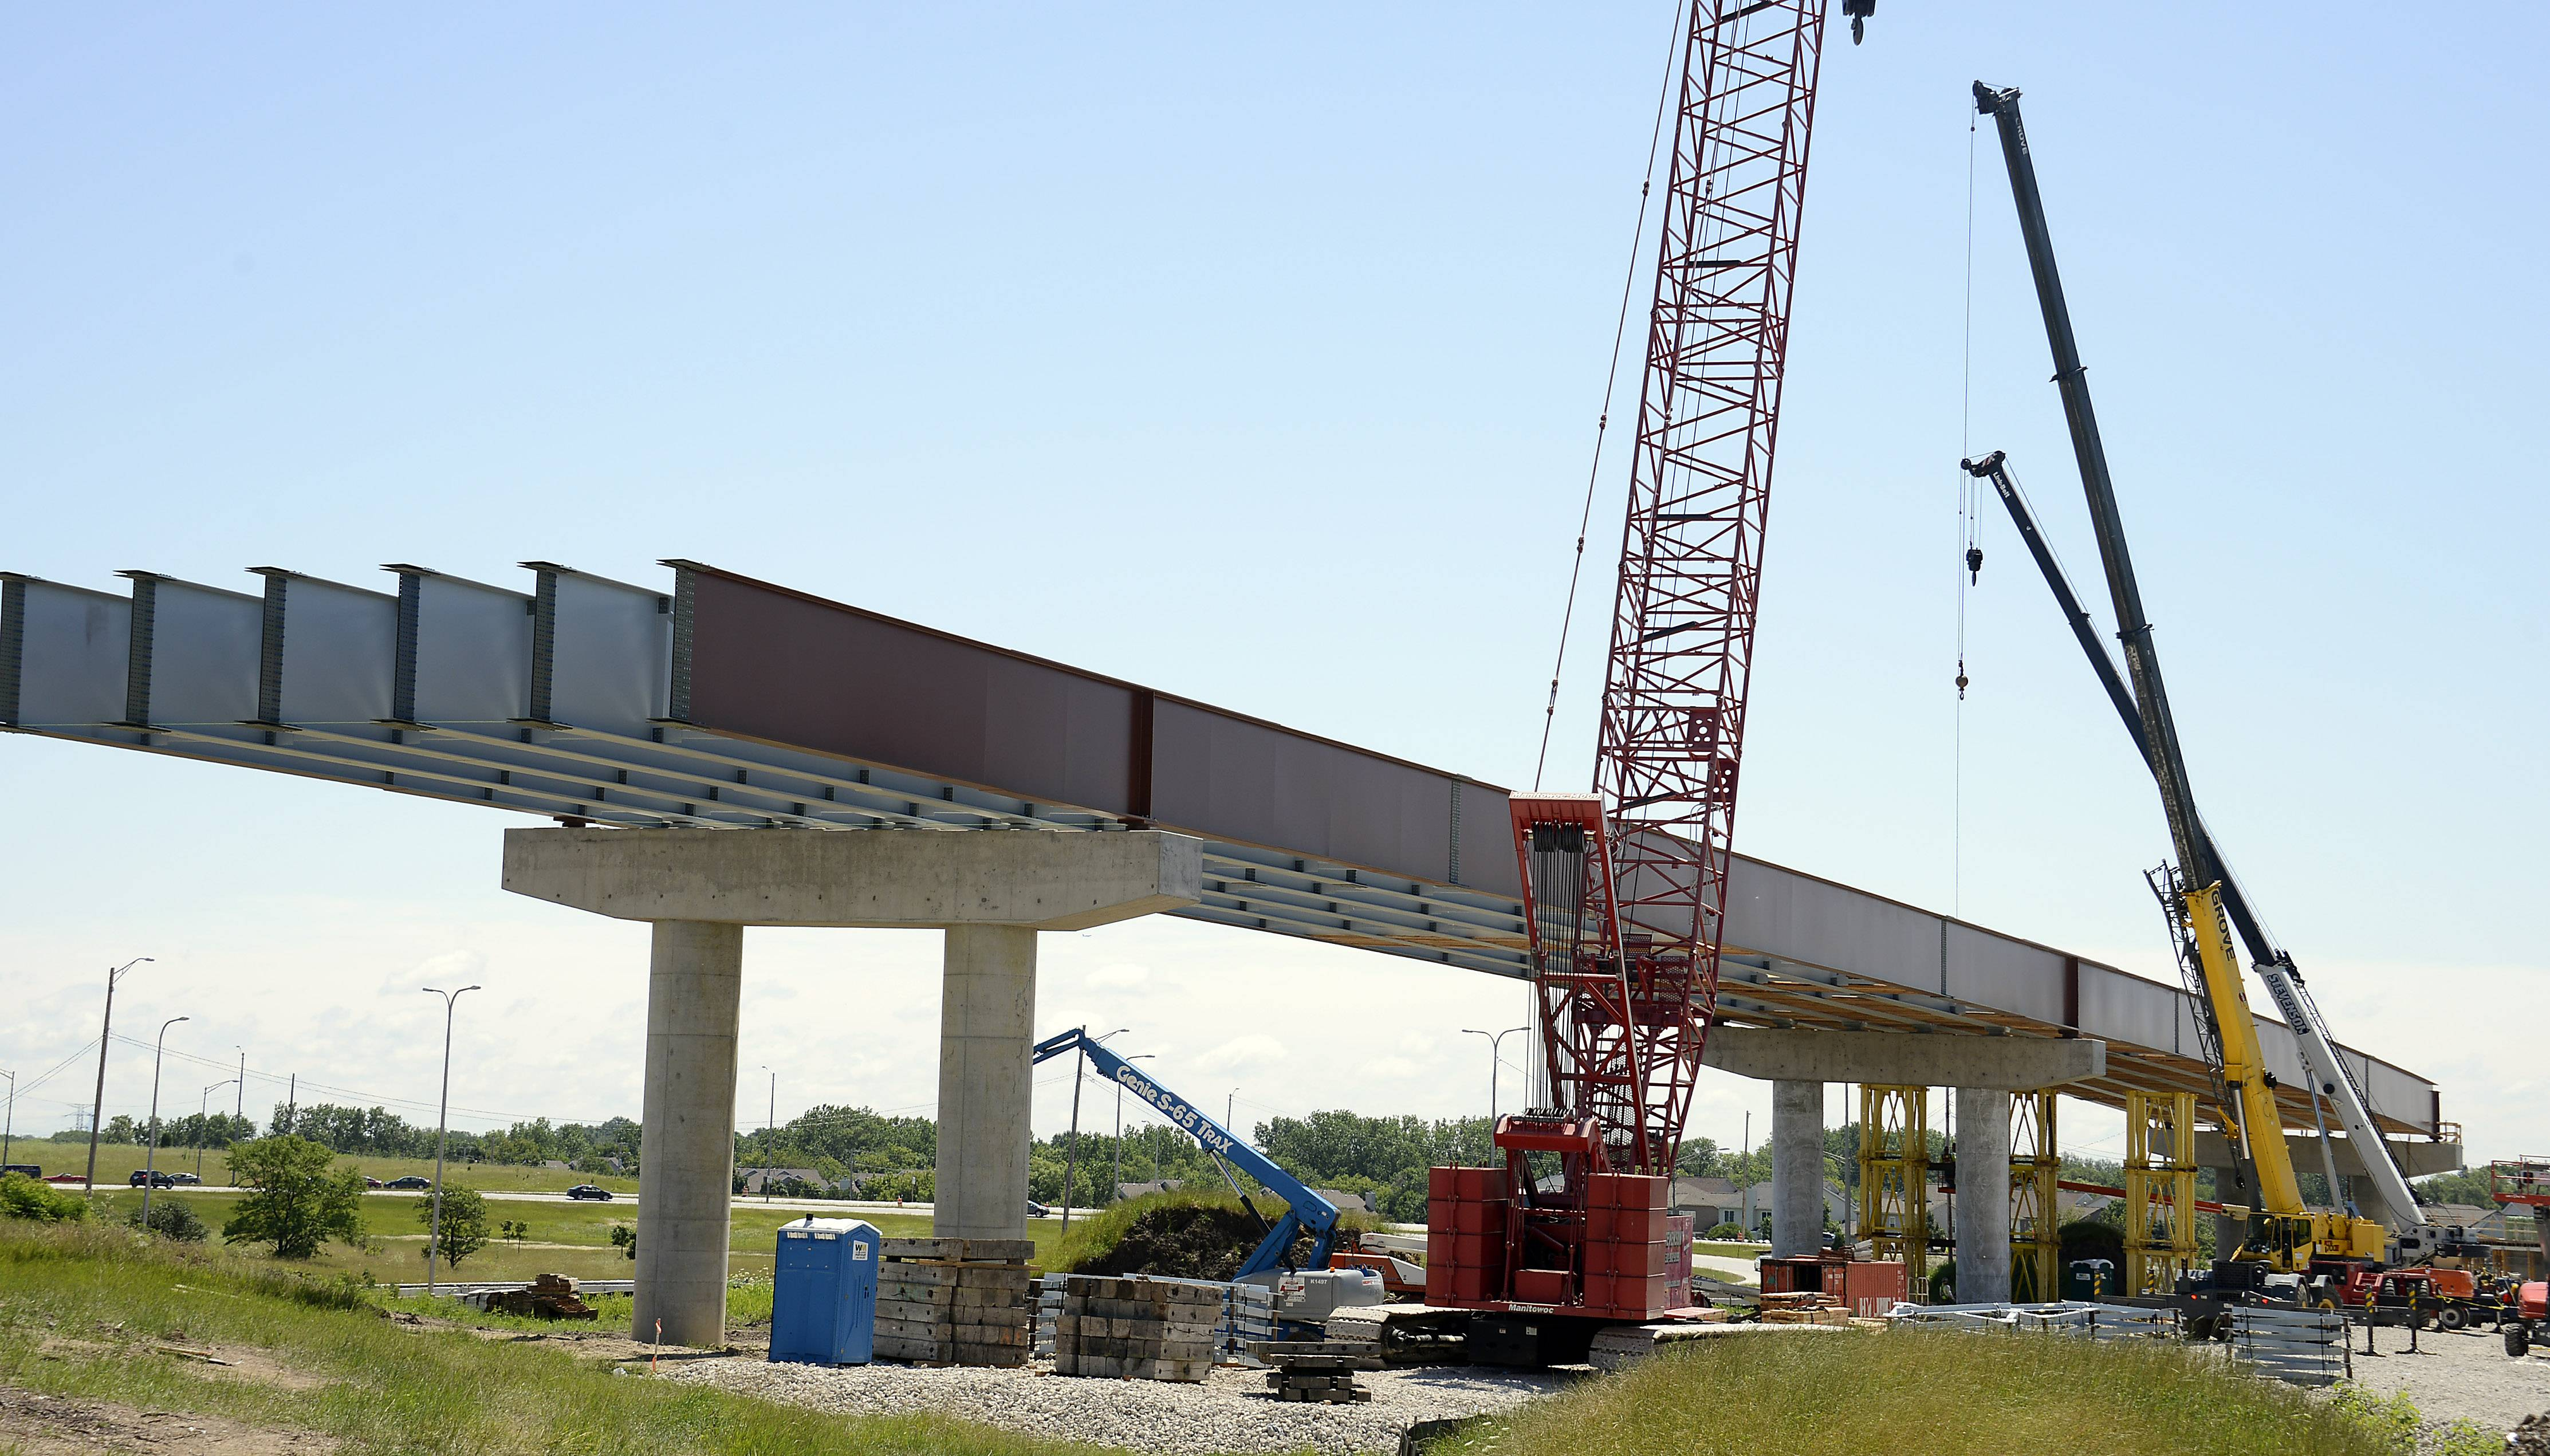 Construction of an interchange with I-290 and the Elgin-O'Hare Expressway continues in 2015.